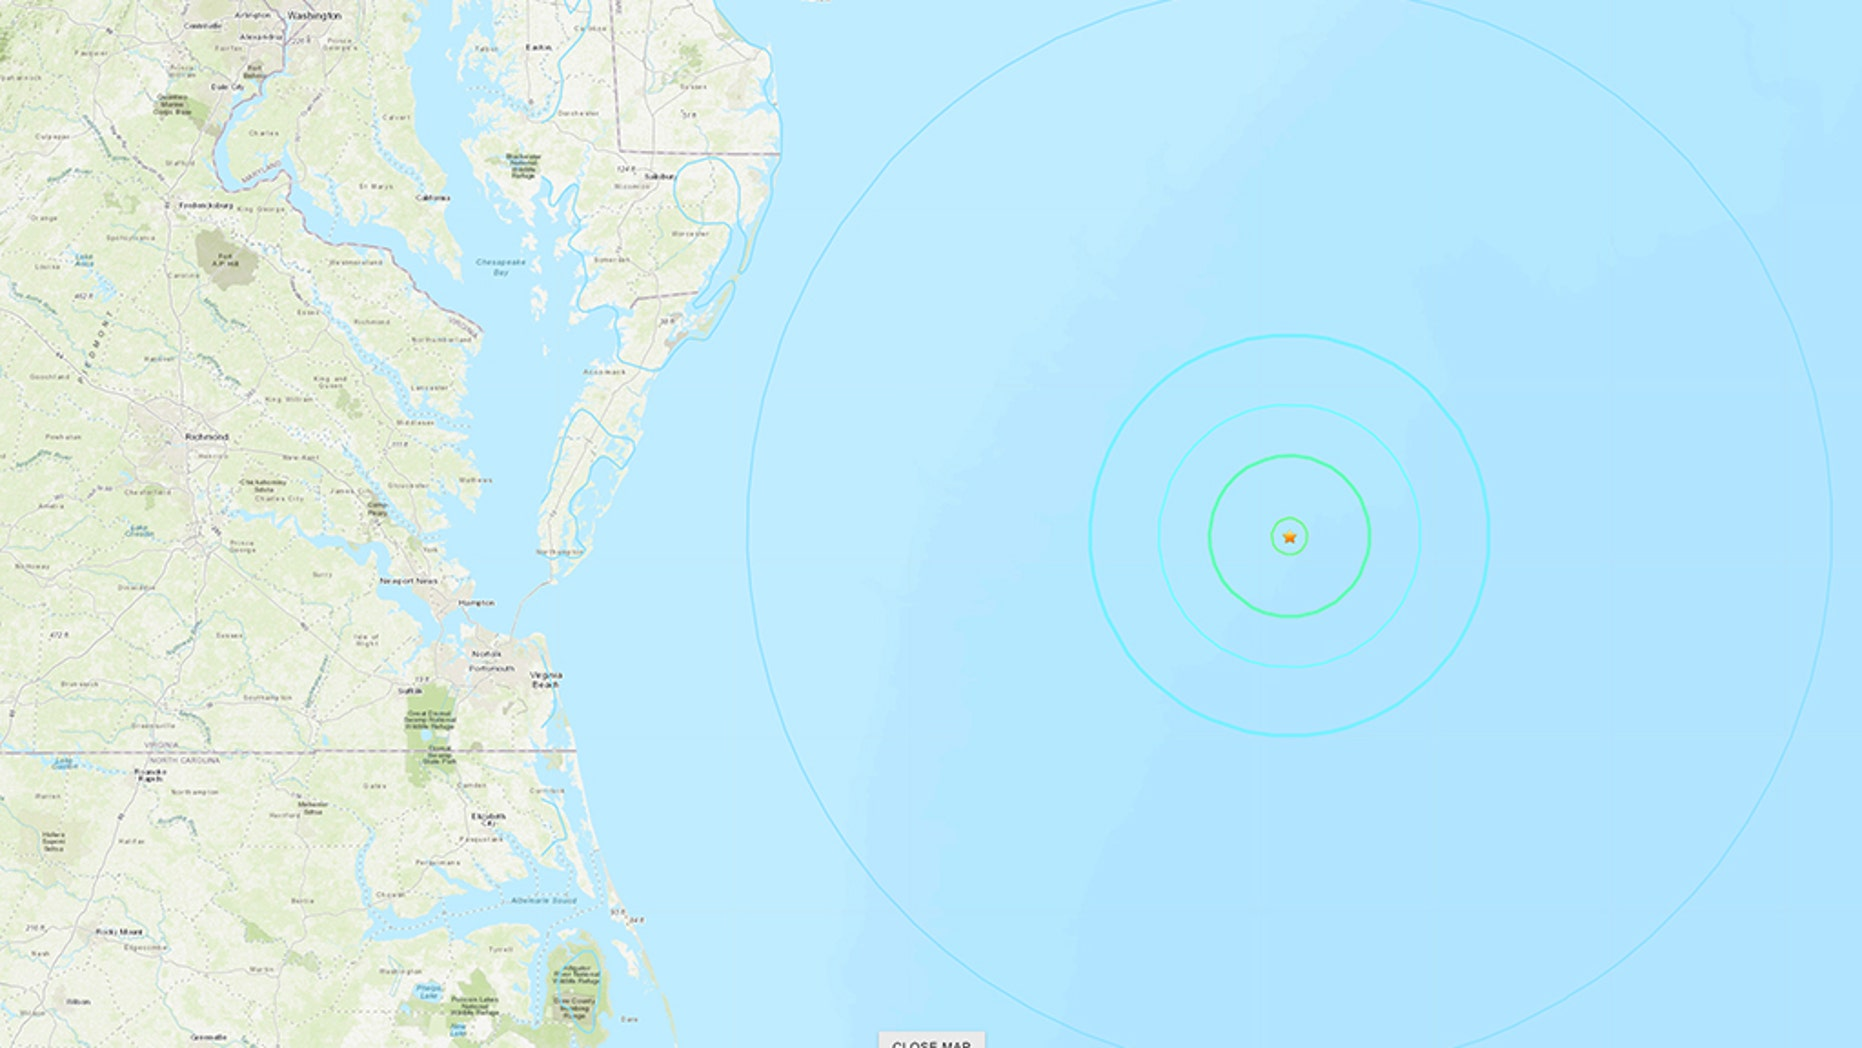 A 4.7-magnitude earthquake struck off the coast of Maryland Tuesday evening, officials said.